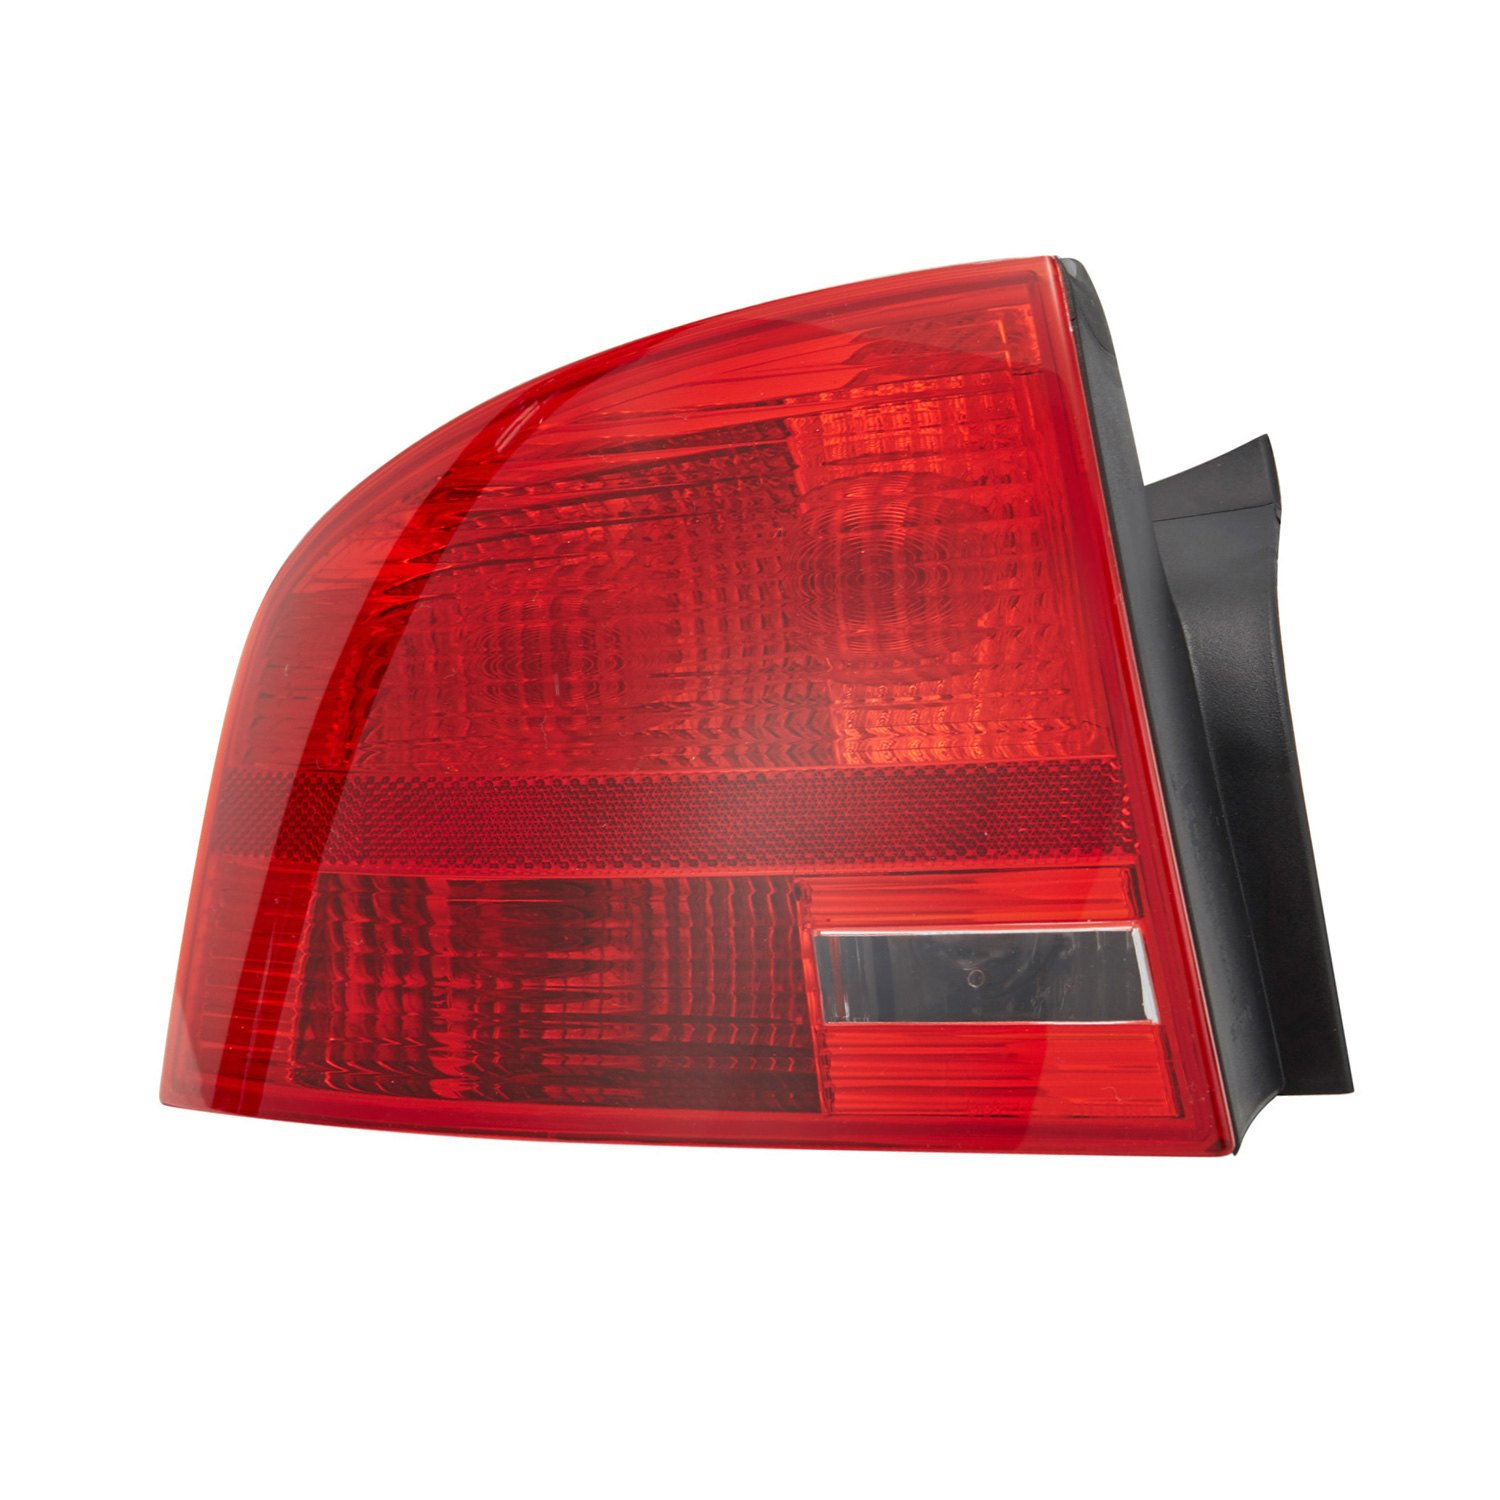 tyc audi a4 a4 quattro 2008 replacement tail light. Black Bedroom Furniture Sets. Home Design Ideas